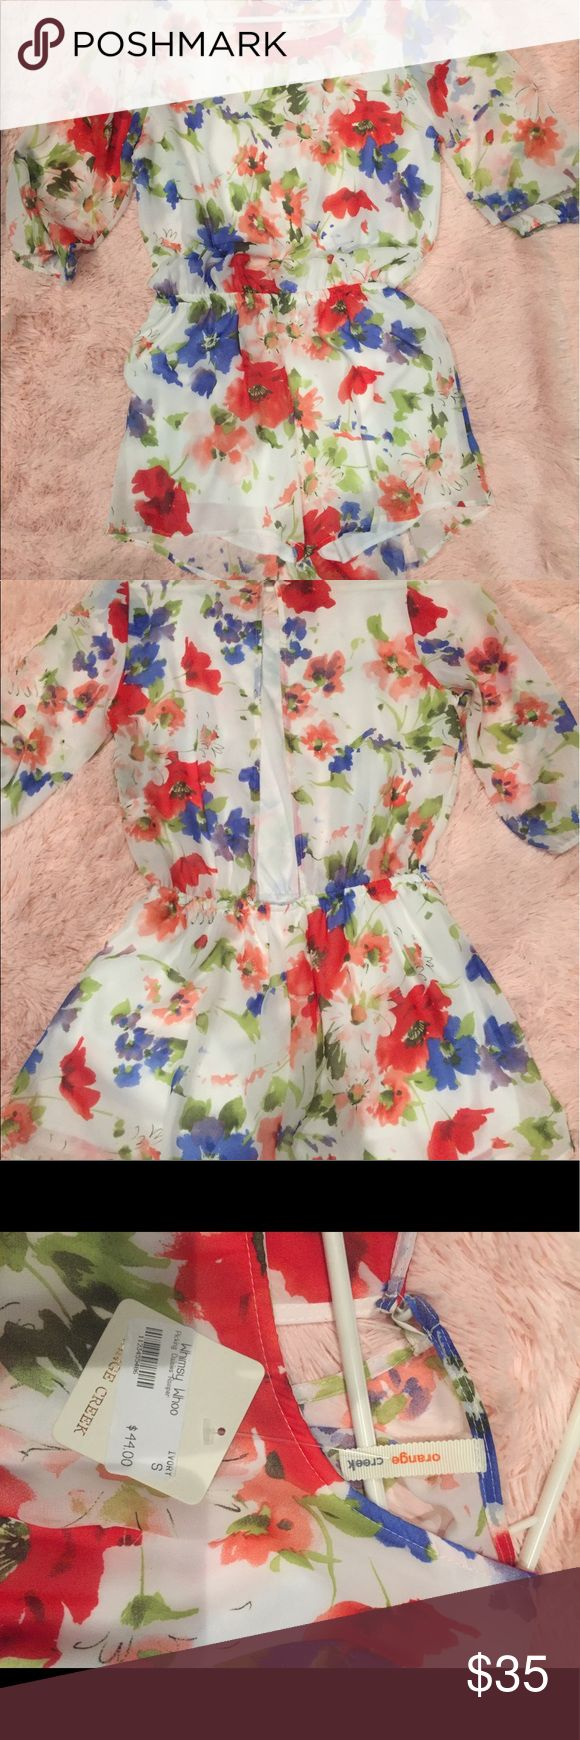 NWT Floral romper! Brand new floral romper with tags. Perfect for summer with a cute open back design! Size S. Material is lightweight, 100% polyester. Dresses